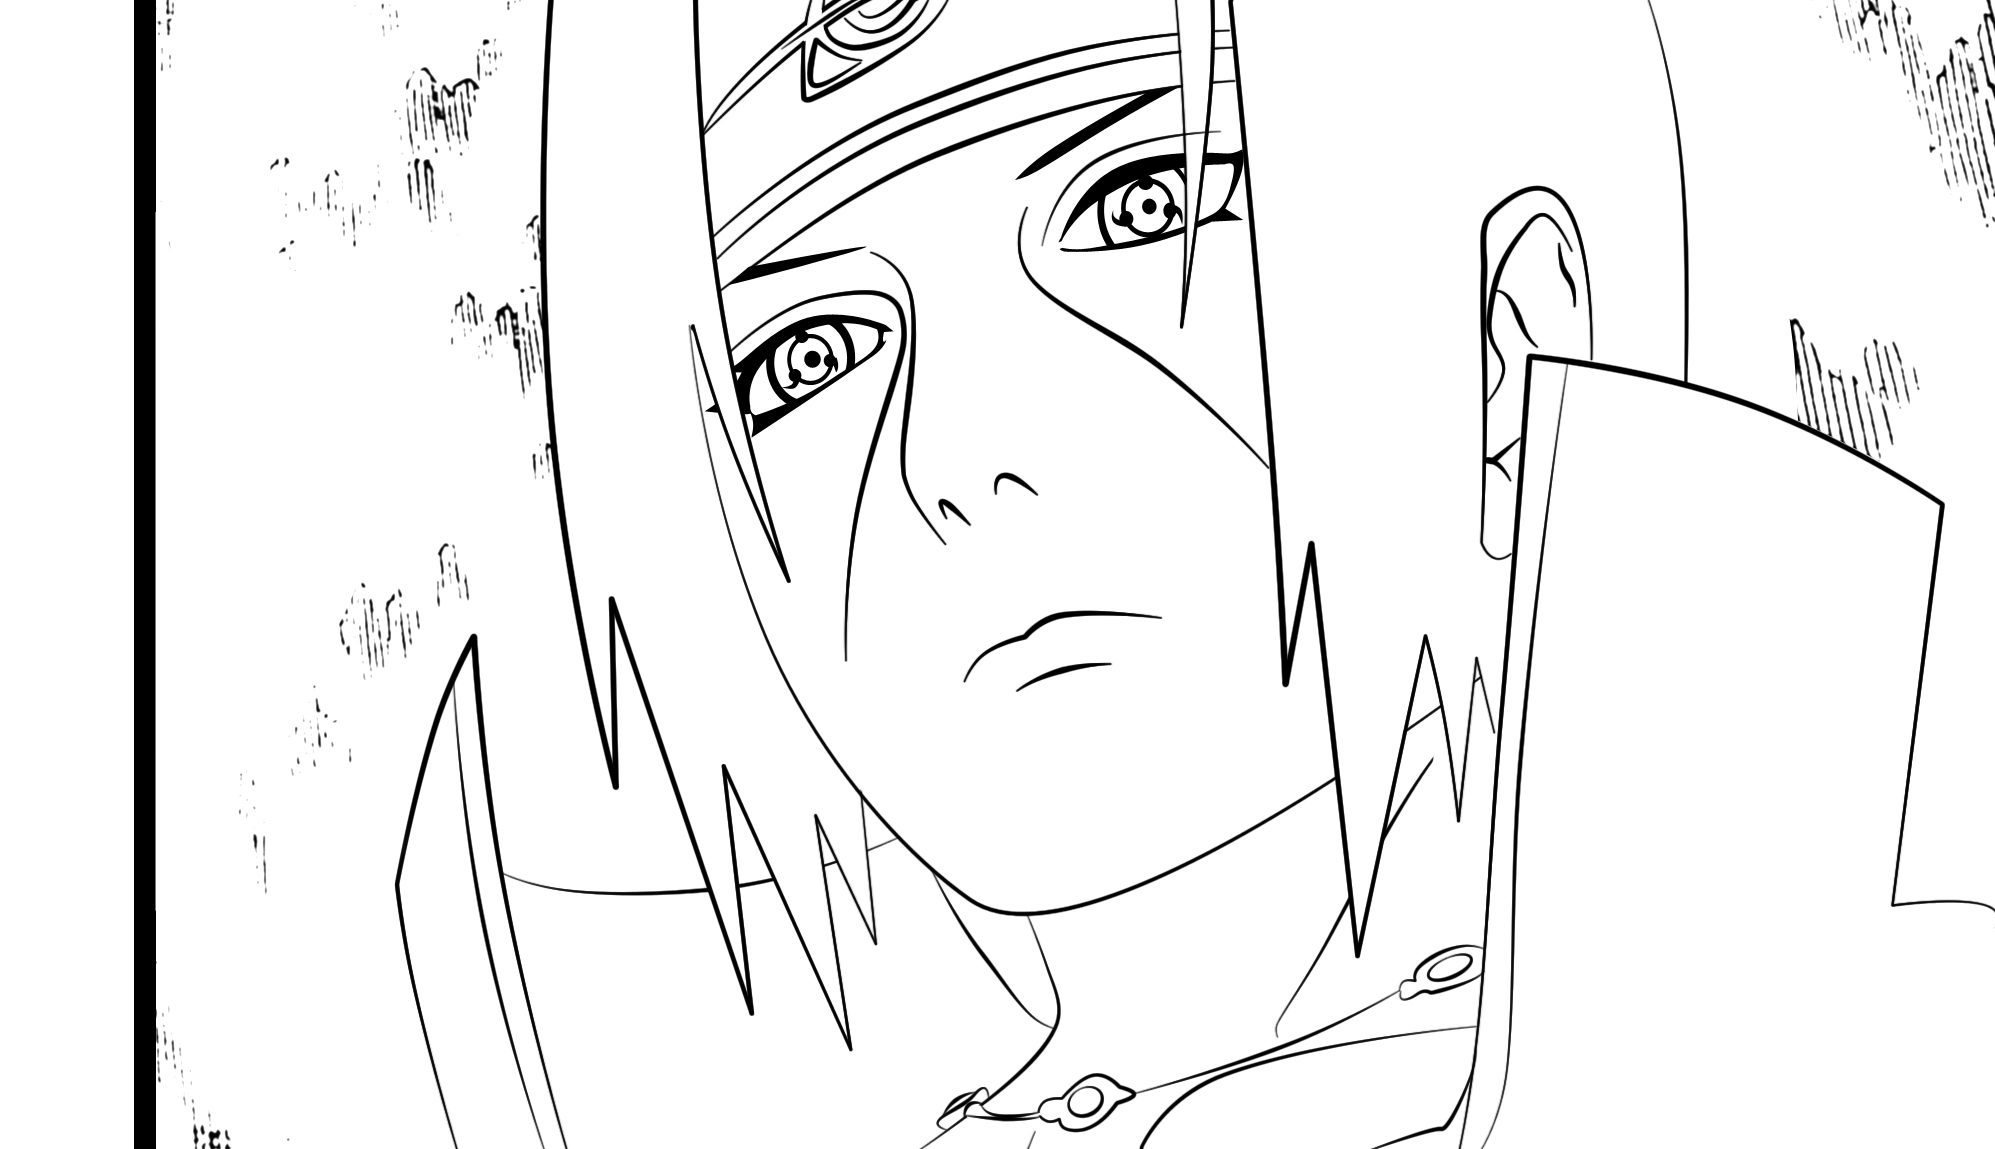 Naruto Lineart : Naruto ch pg lineart by thegamejc on deviantart